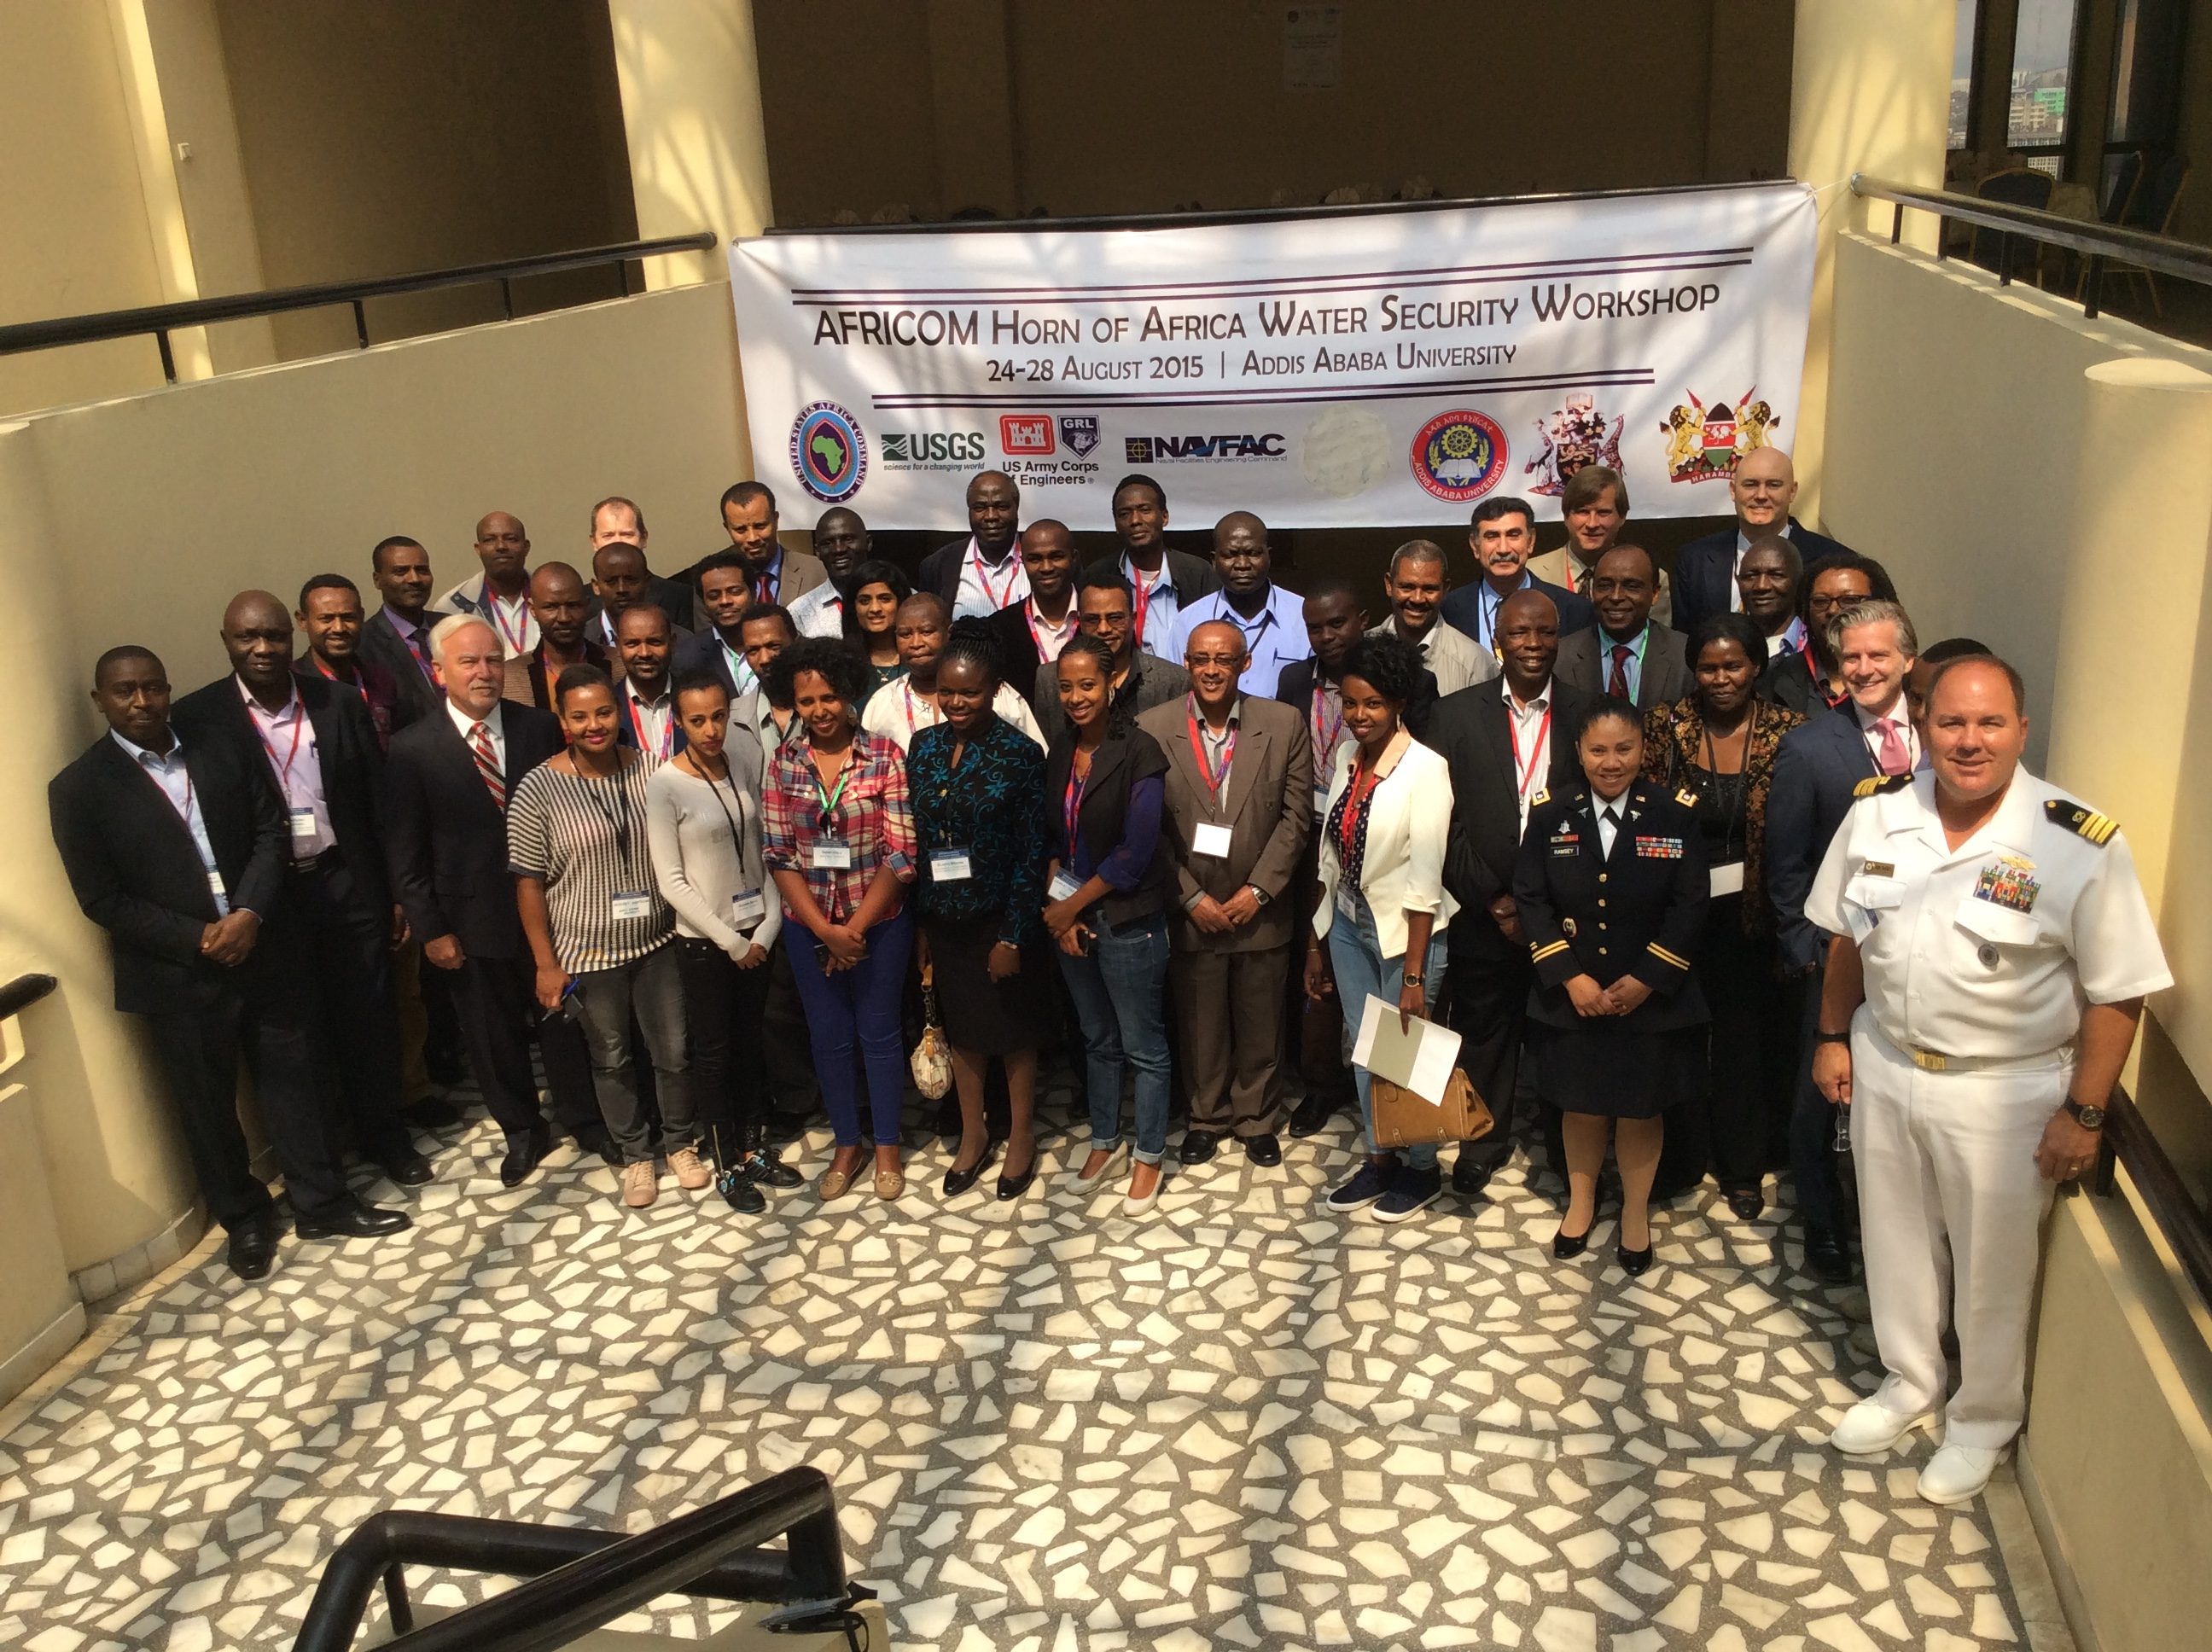 A group photo taken during the Horn of Africa Water Security Workshop in Addis Ababa, Ethiopia in August 2015. (Courtesy Photo)